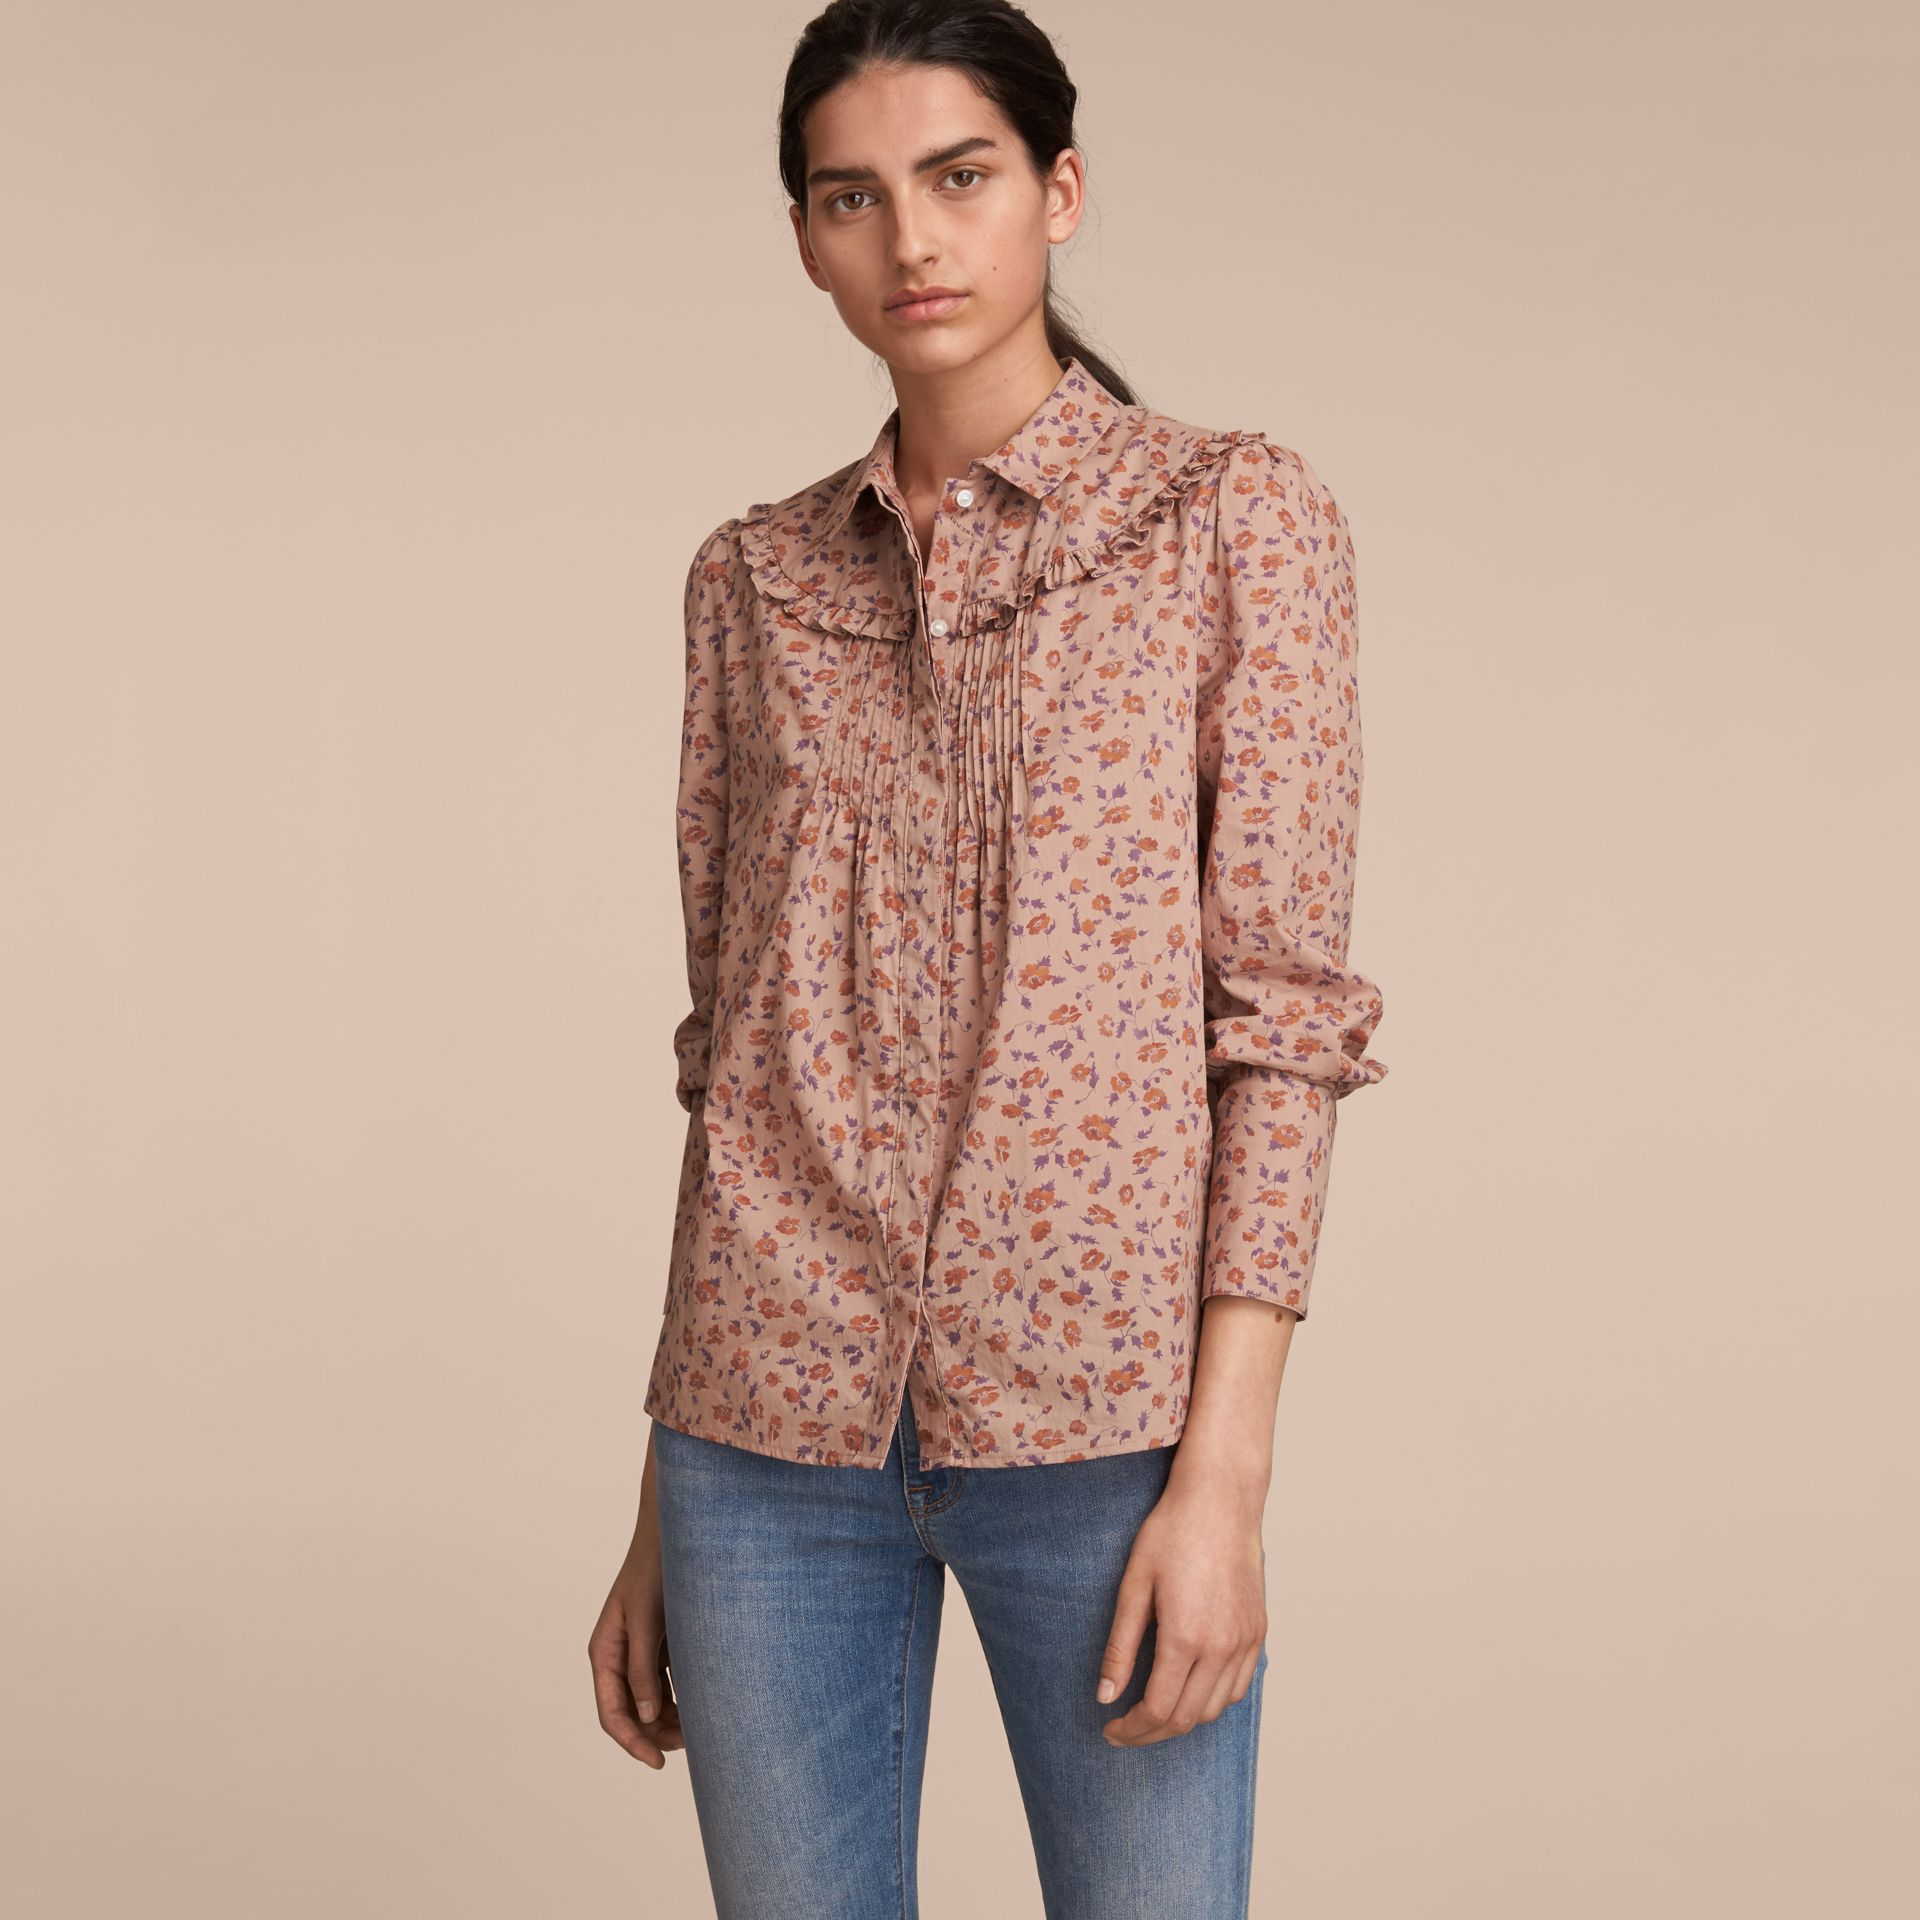 Ruffle Yoke Floral Print Cotton Shirt in Light Copper - Women | Burberry - gallery image 6